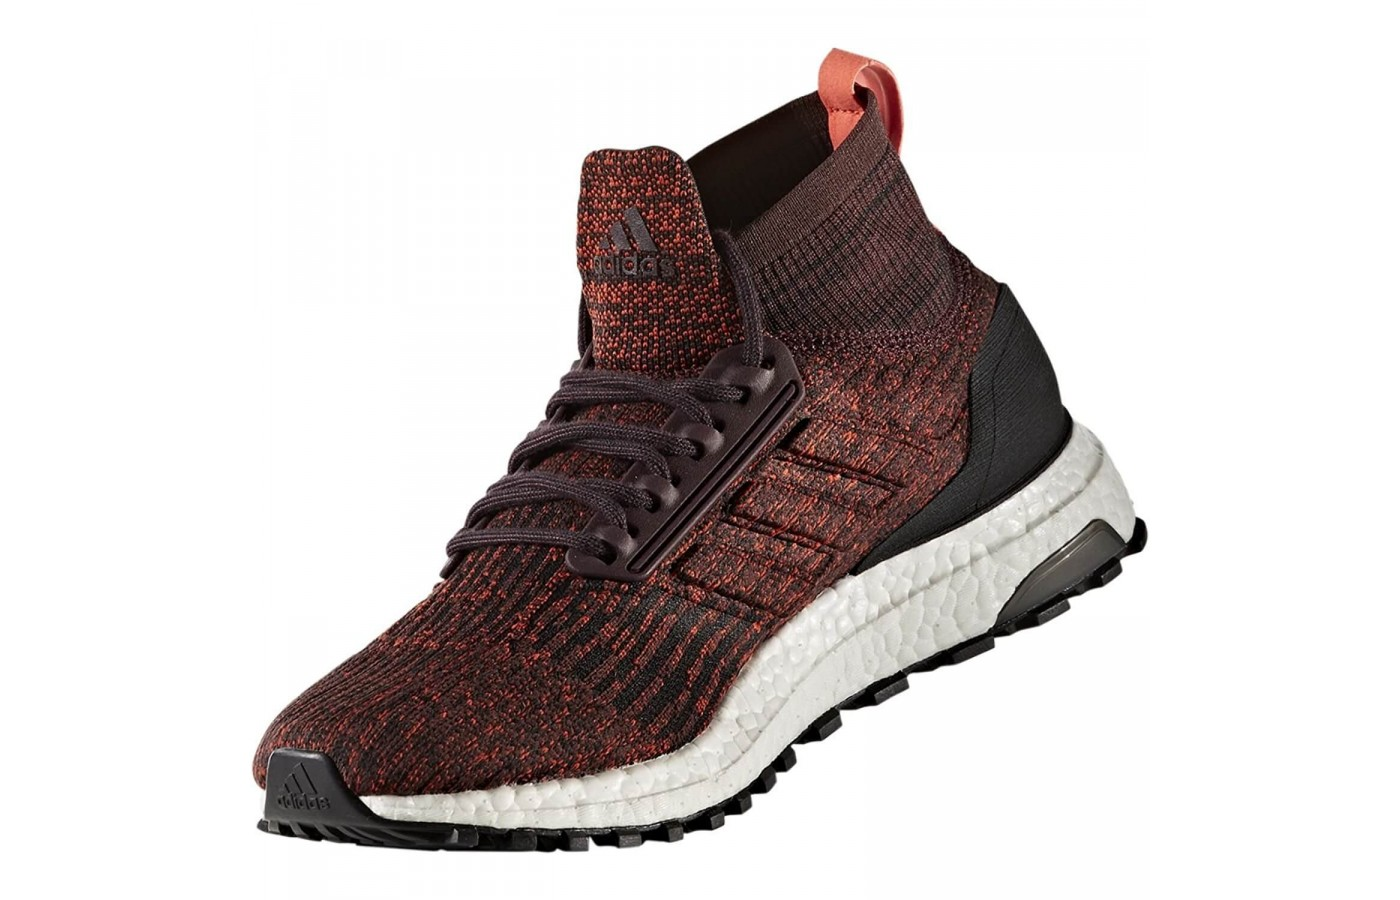 sleek quite nice detailing Adidas Ultraboost All Terrain